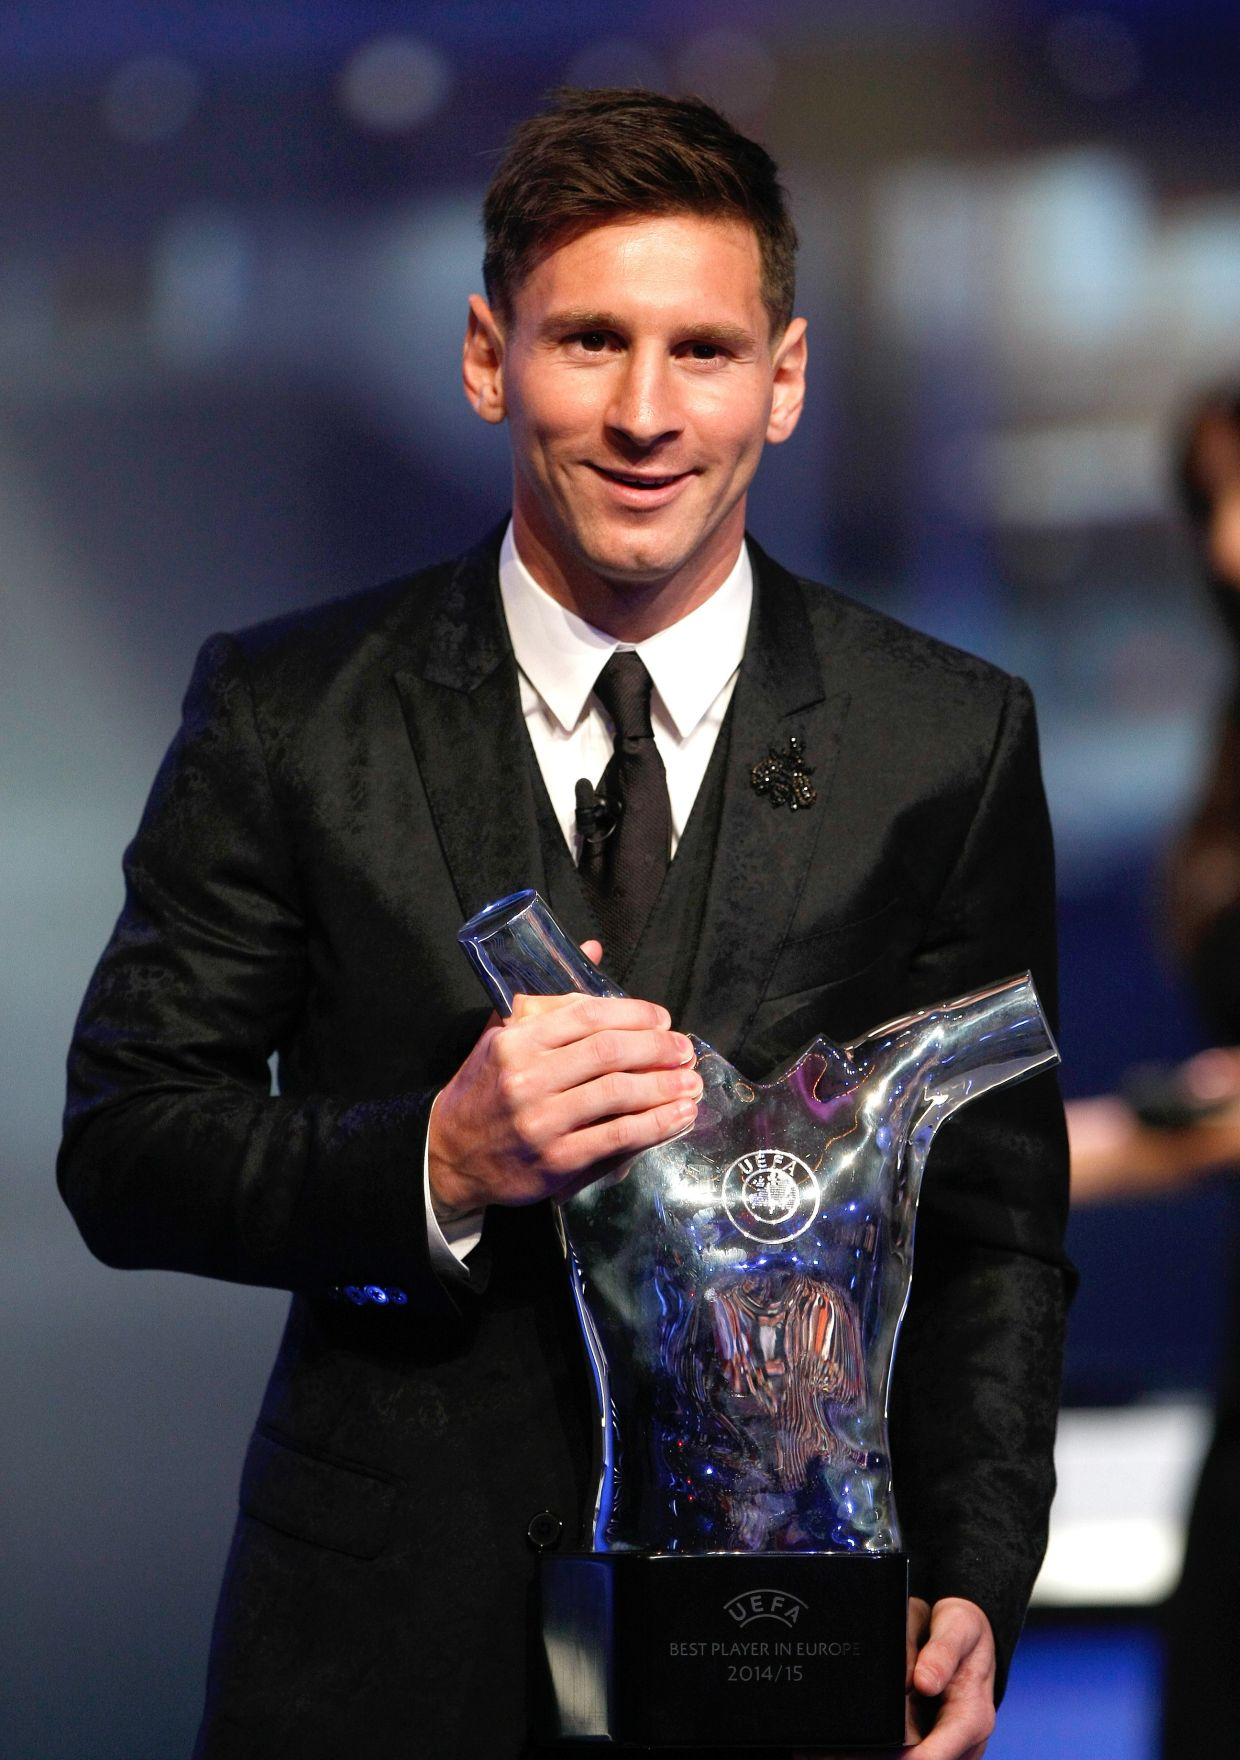 FC Barcelona's Lionel Messi of Argentina, holds his trophy after winning the best player of the year trophy during the UEFA Champions League draw at the Grimaldi Forum, in Monaco, Thursday, Aug. 27, 2015. (AP Photo/Claude Paris)